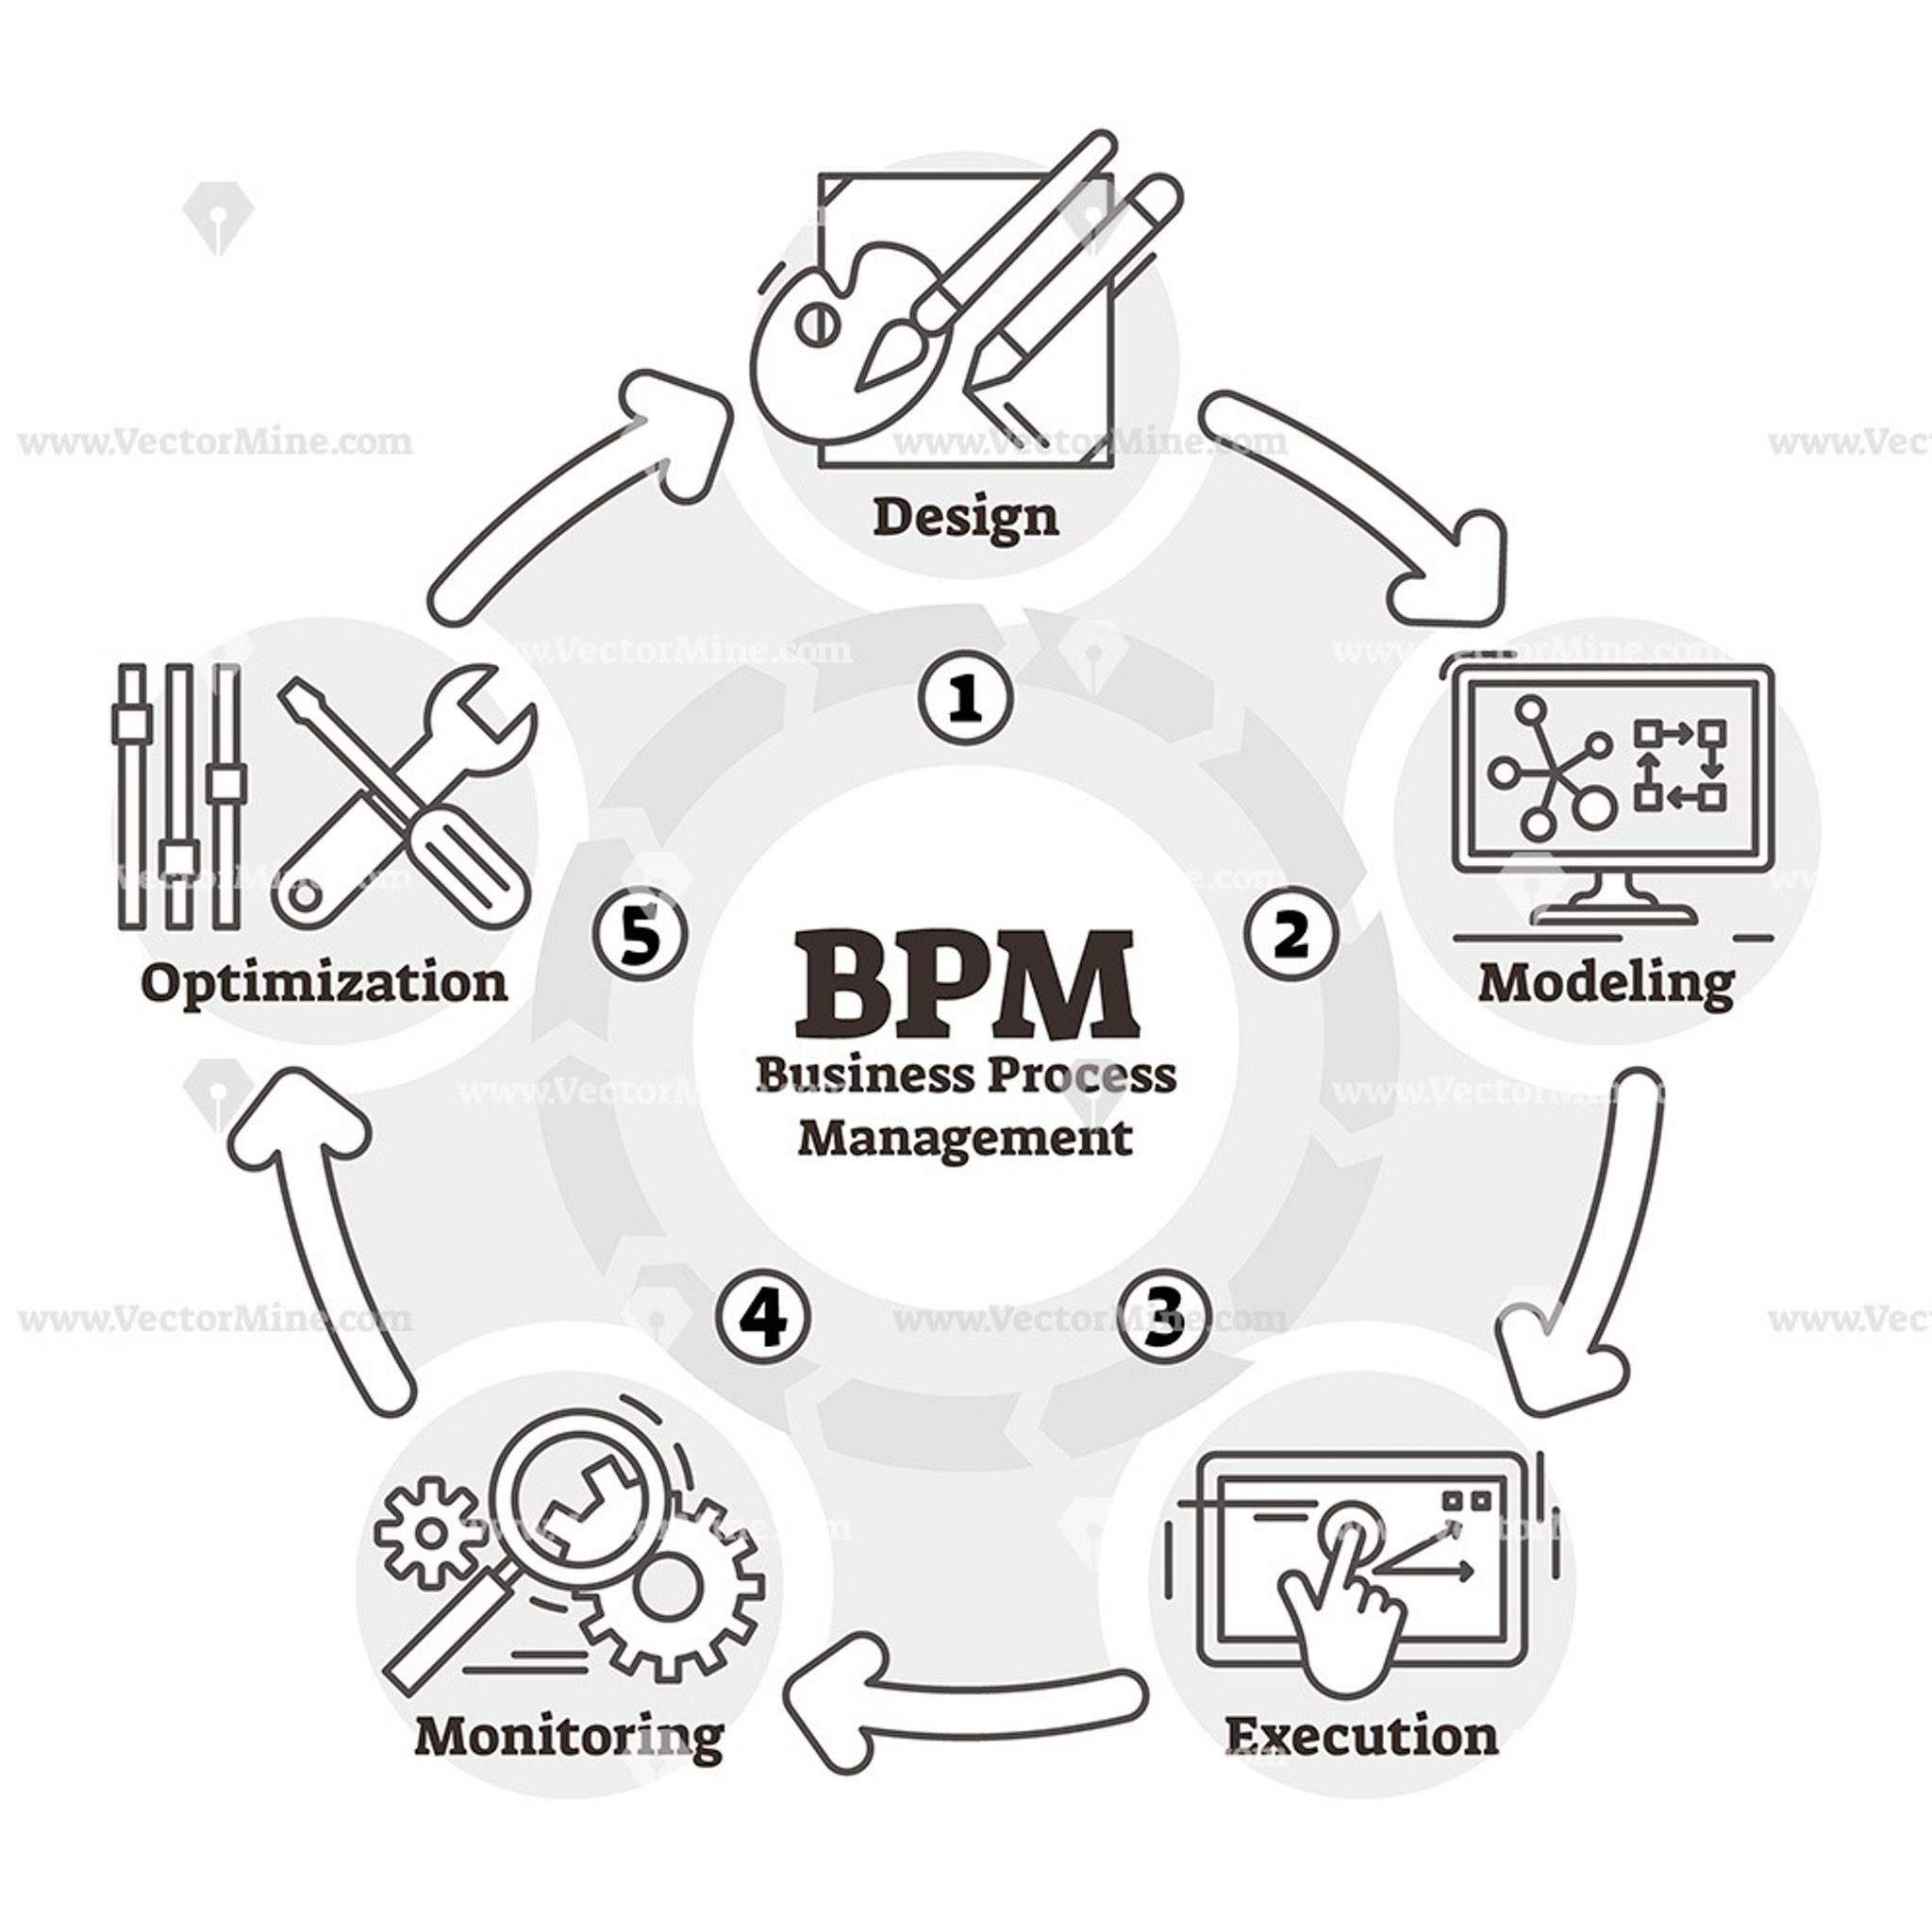 Bpm Outline Vector Illustration Icons Diagram In